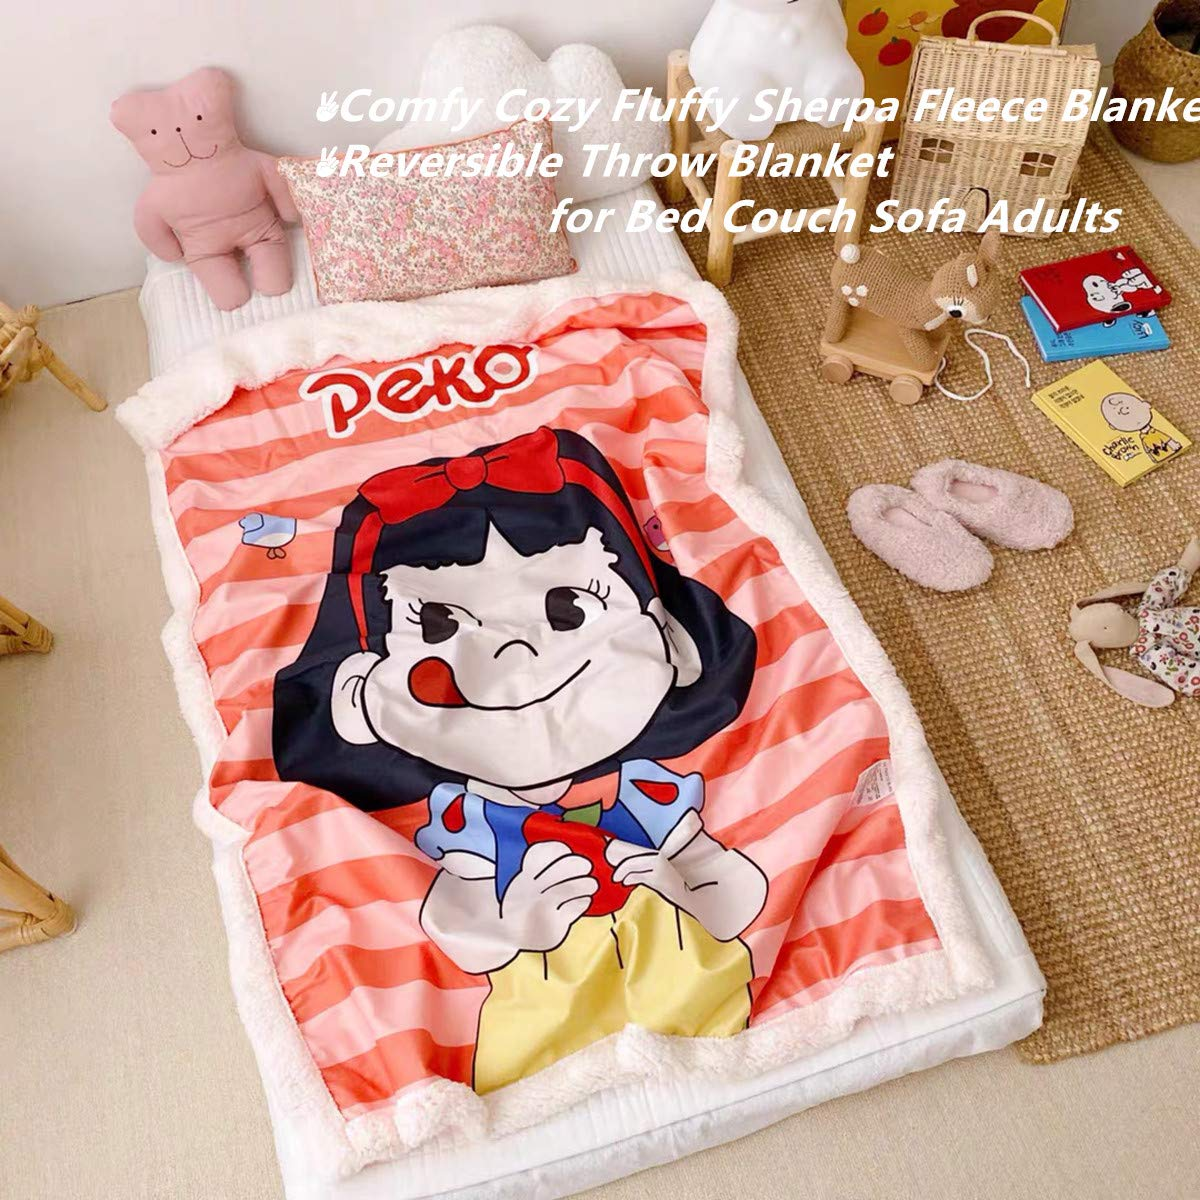 Kids Plush Sherpa Throw Fleece Blanket Super Soft Comfy Fluffy Warm Couch Sofa Blanket for Boys//Girls Reversible Cozy Bedding Blanket Sailor Moon Pink, 40 x 60 Watching TV fit Reading Outdoors